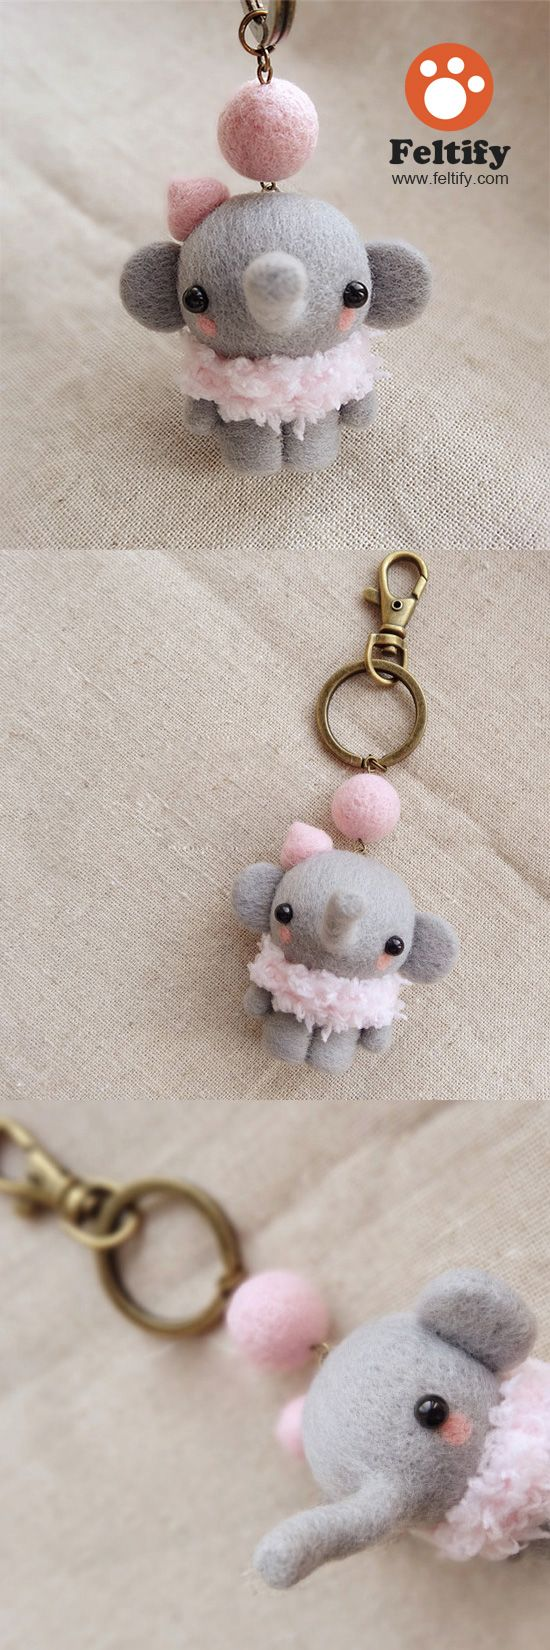 Needle Felted Felting project Wool Animals Cute Elephant Craft #feltedwoolanimals